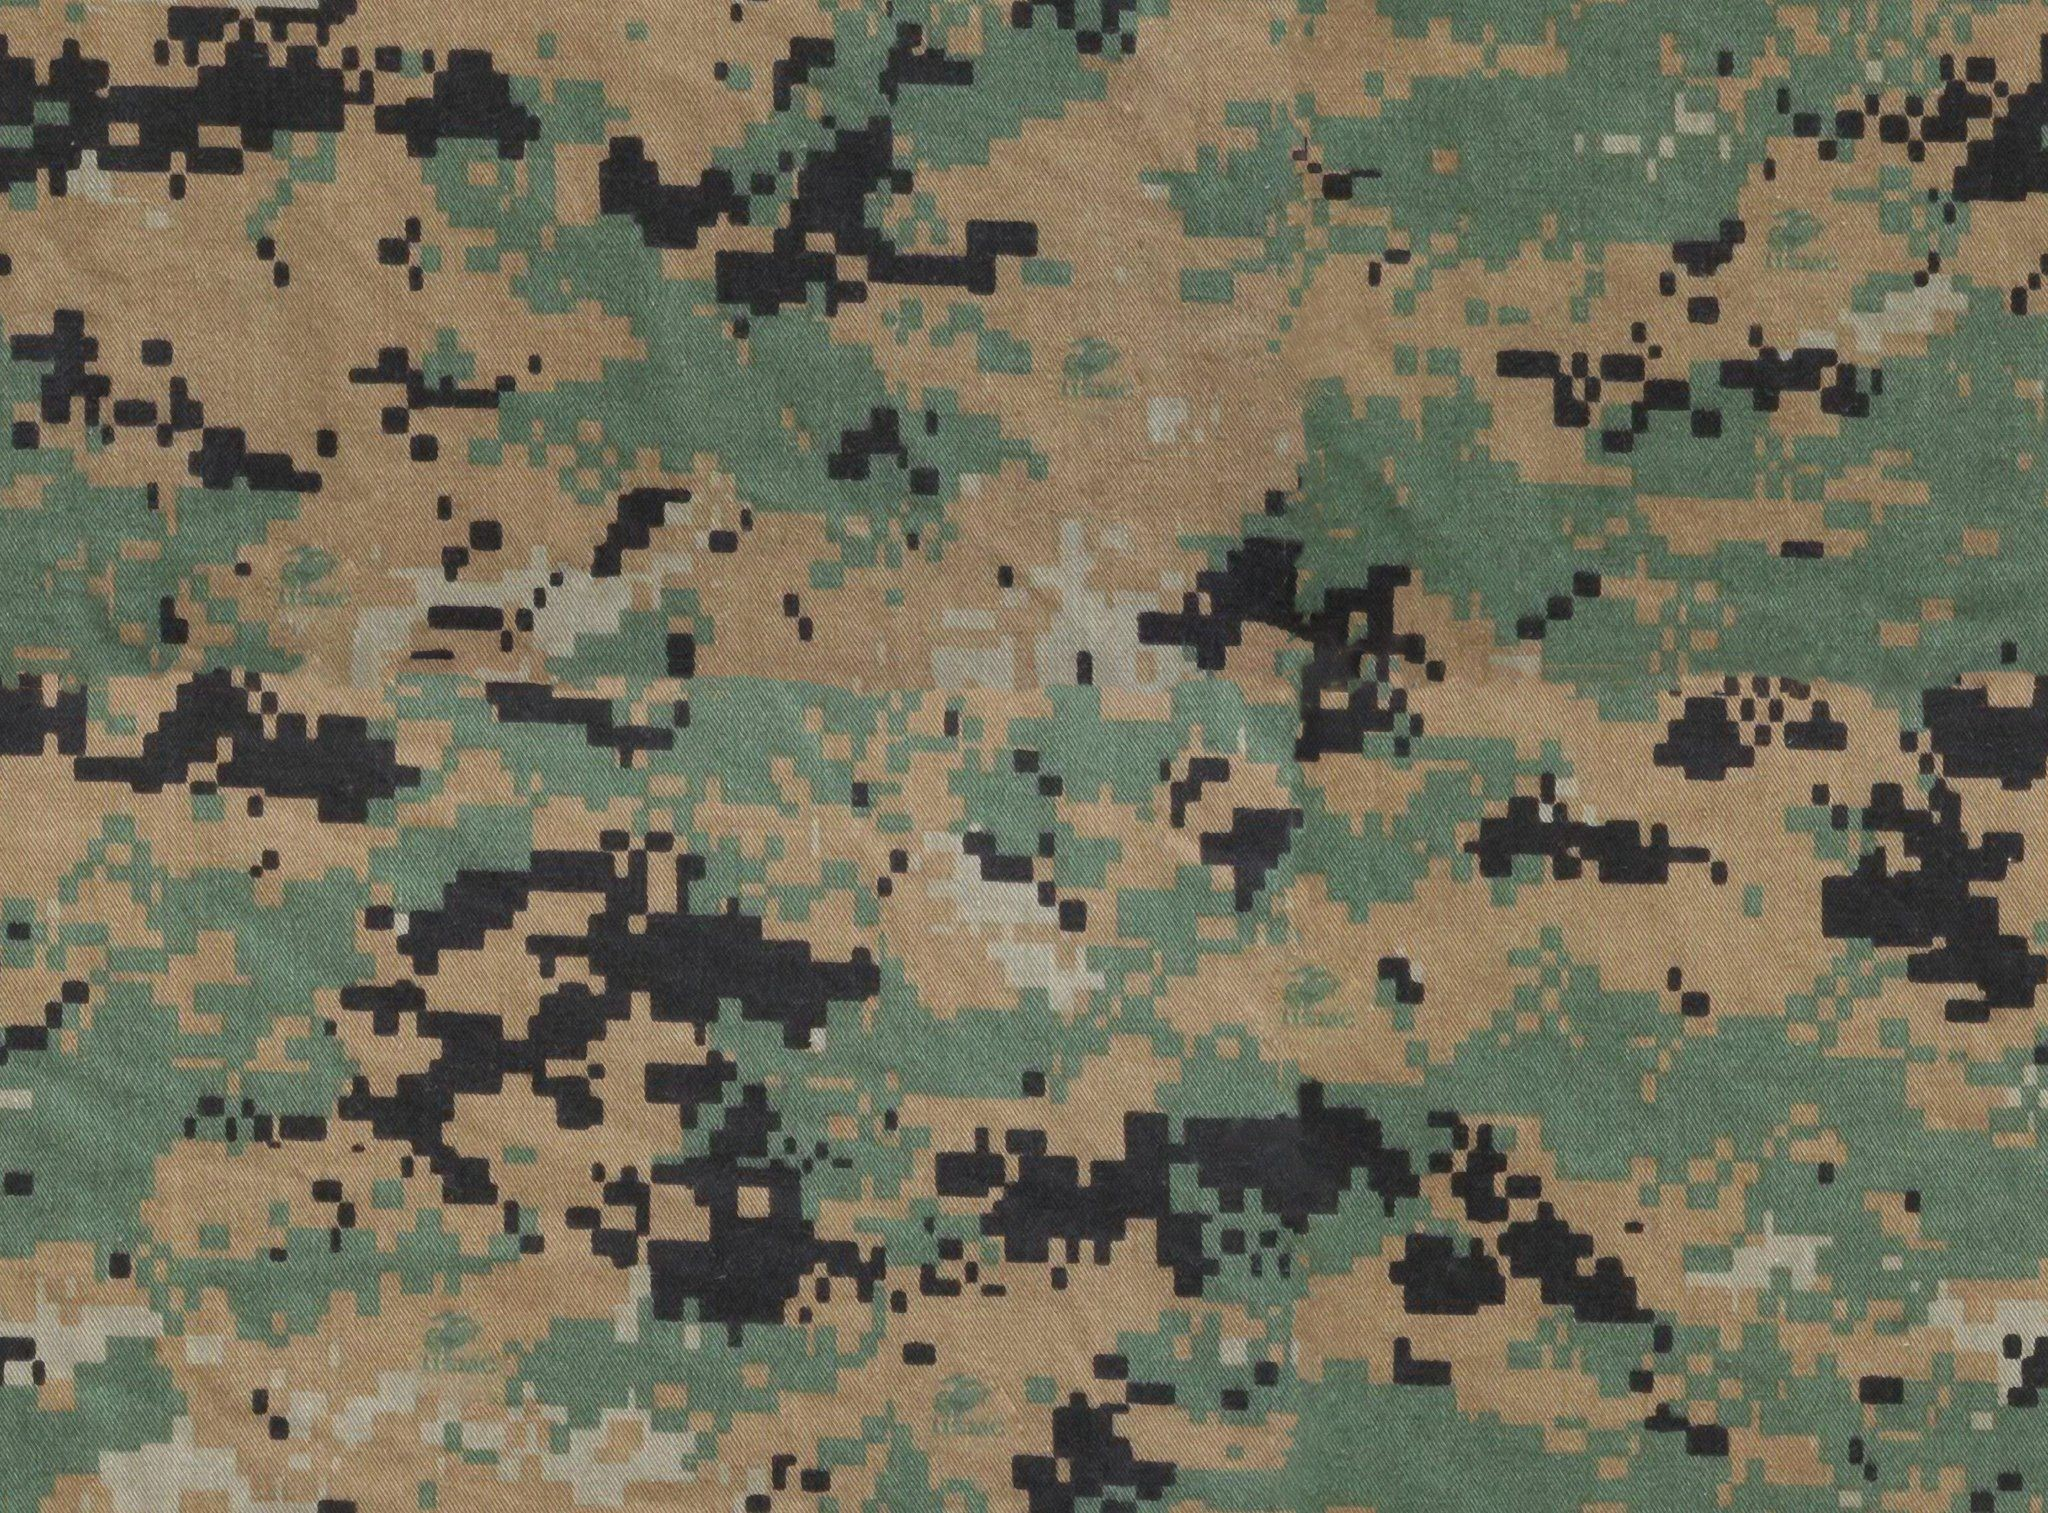 2048x1513 marine camo wallpaper hd background wallpapers free amazing cool tablet  smart phone high definition